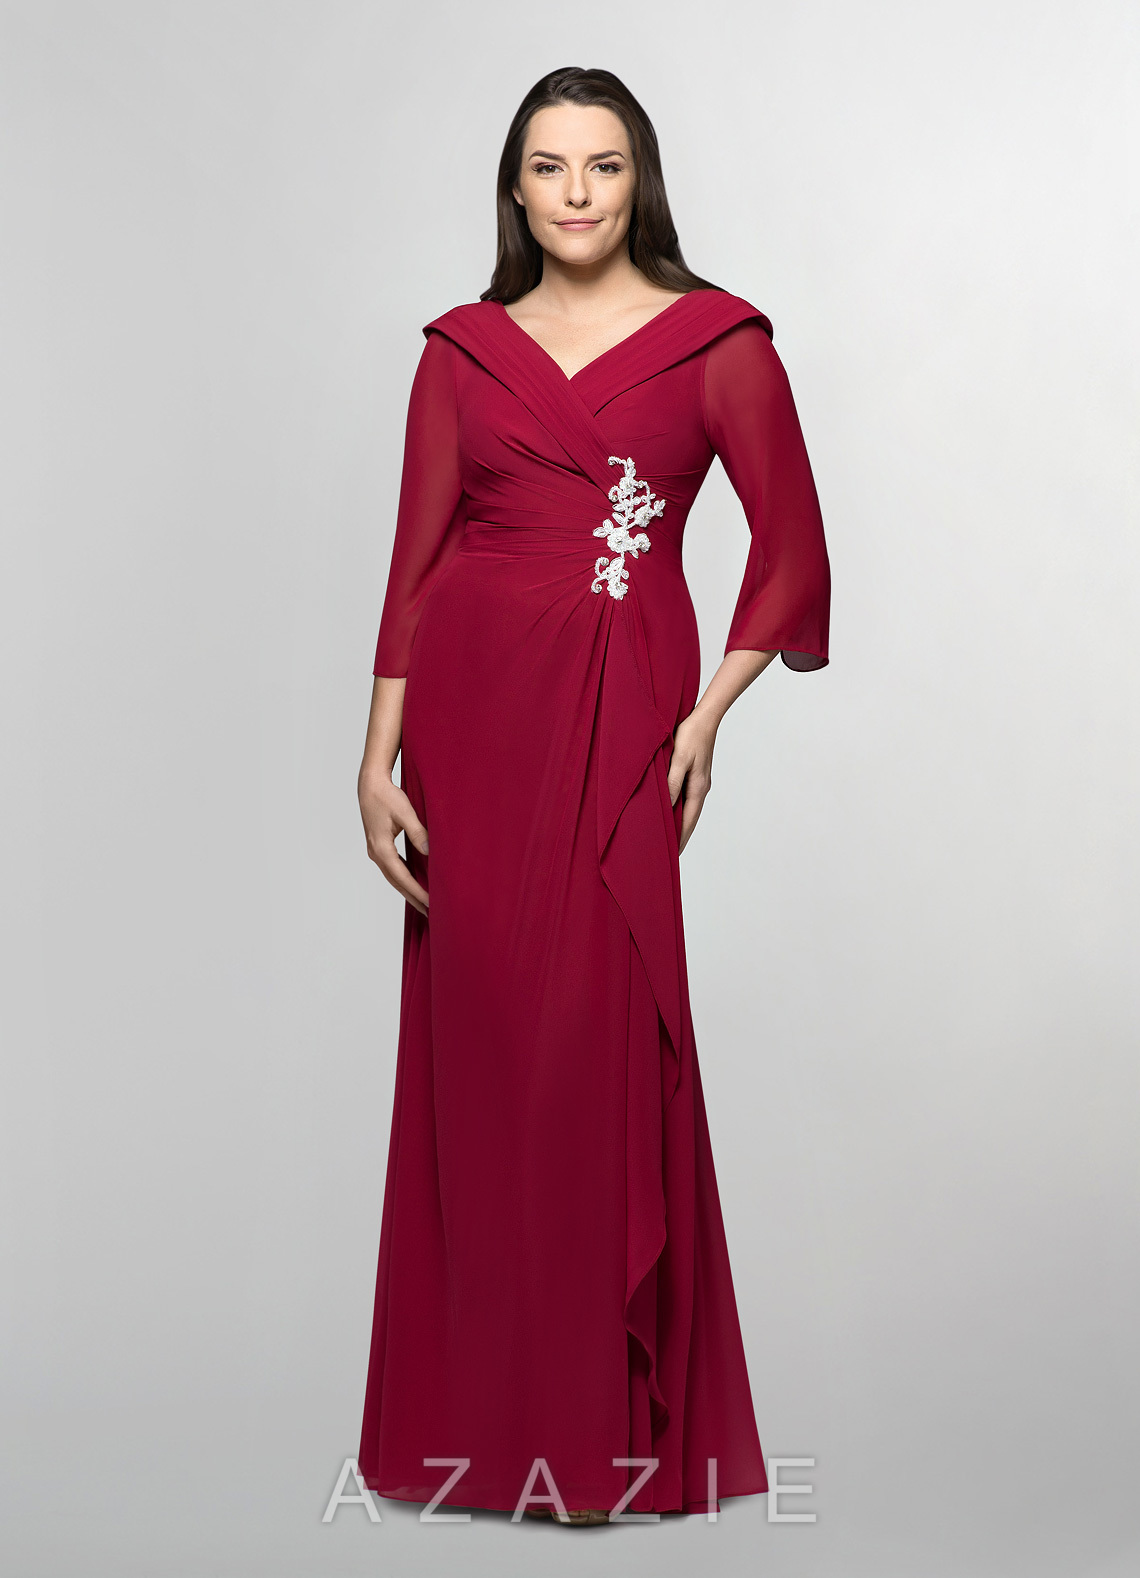 62c2f4da1b7795 Azazie Jaycee MBD Mother Of The Bride Dress | Azazie